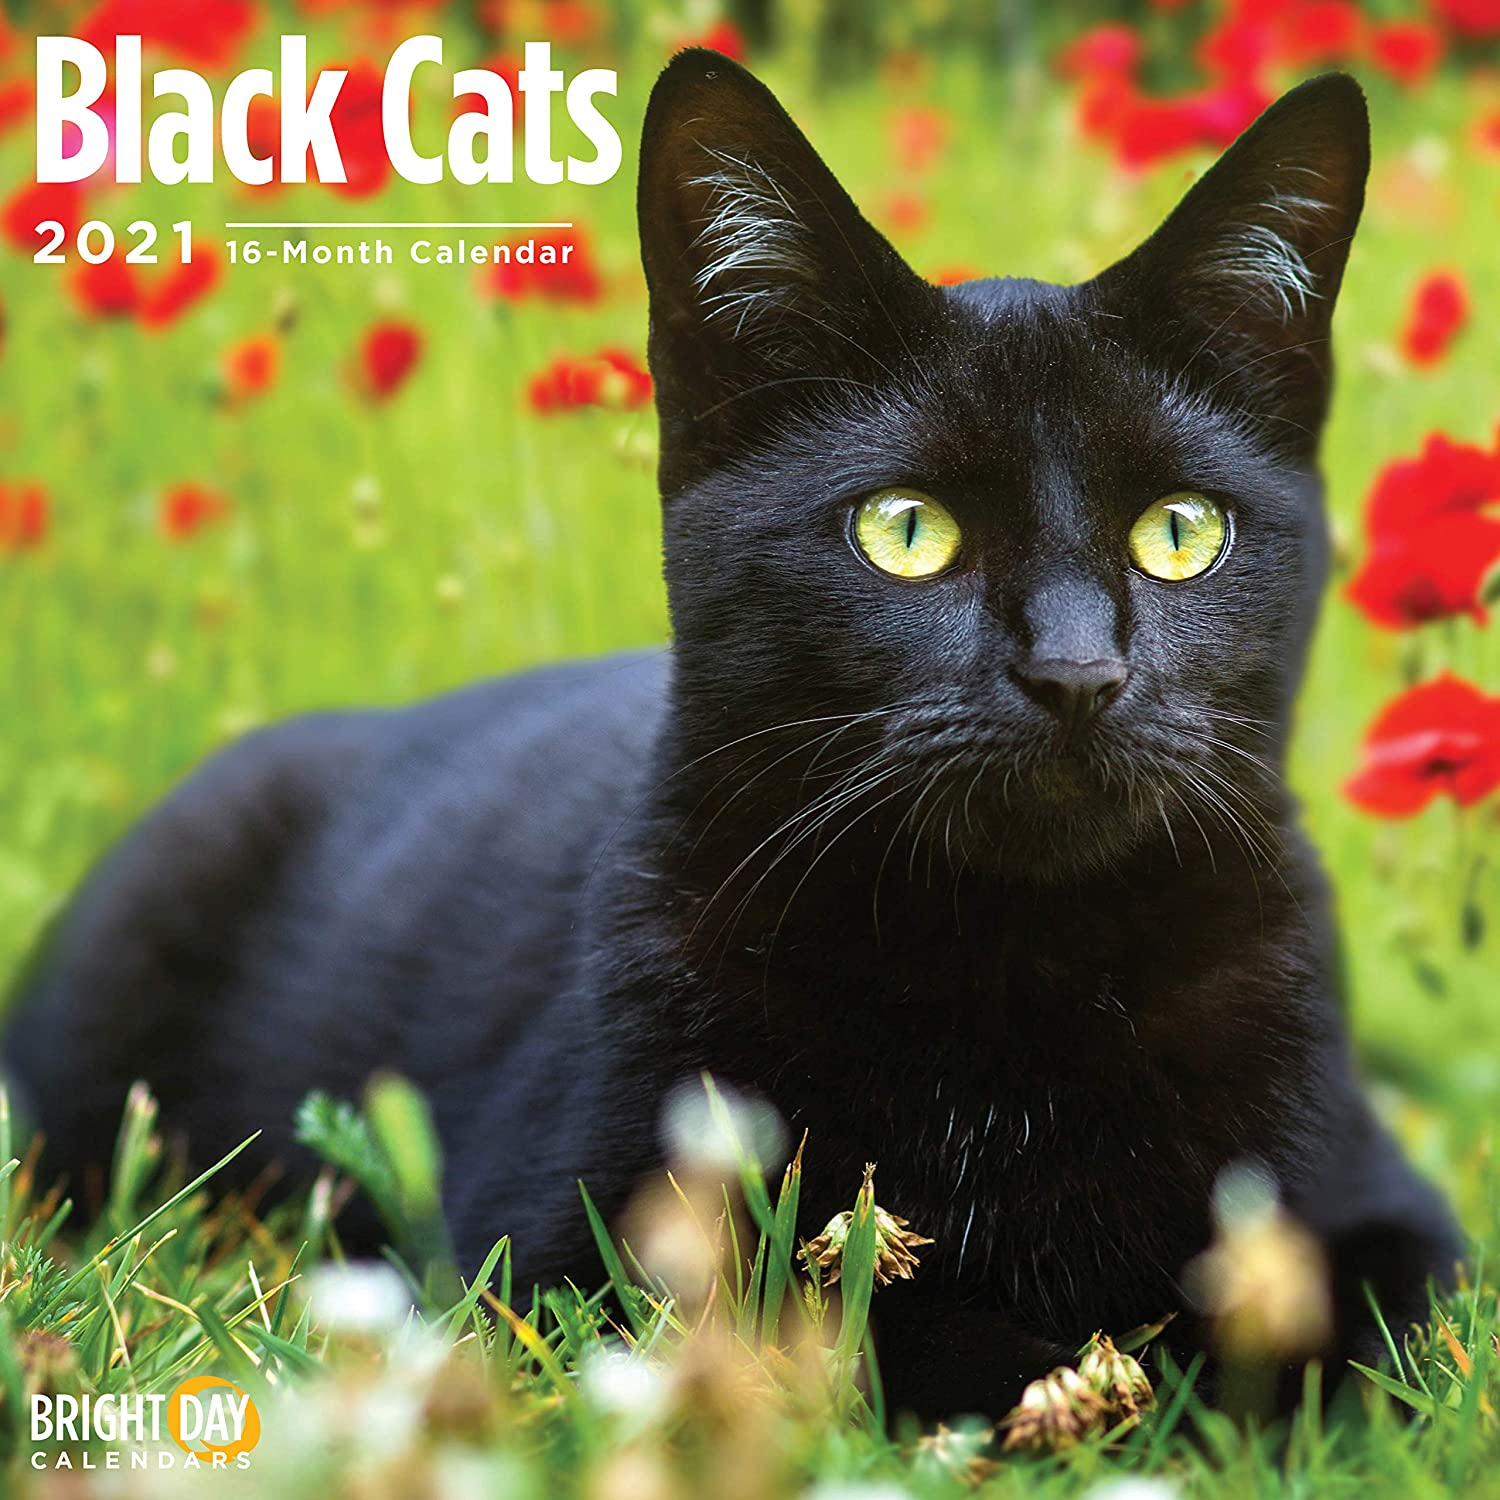 2021 Black Cats Wall Calendar by Bright Day, 12 x 12 Inch, Kitten Kitty